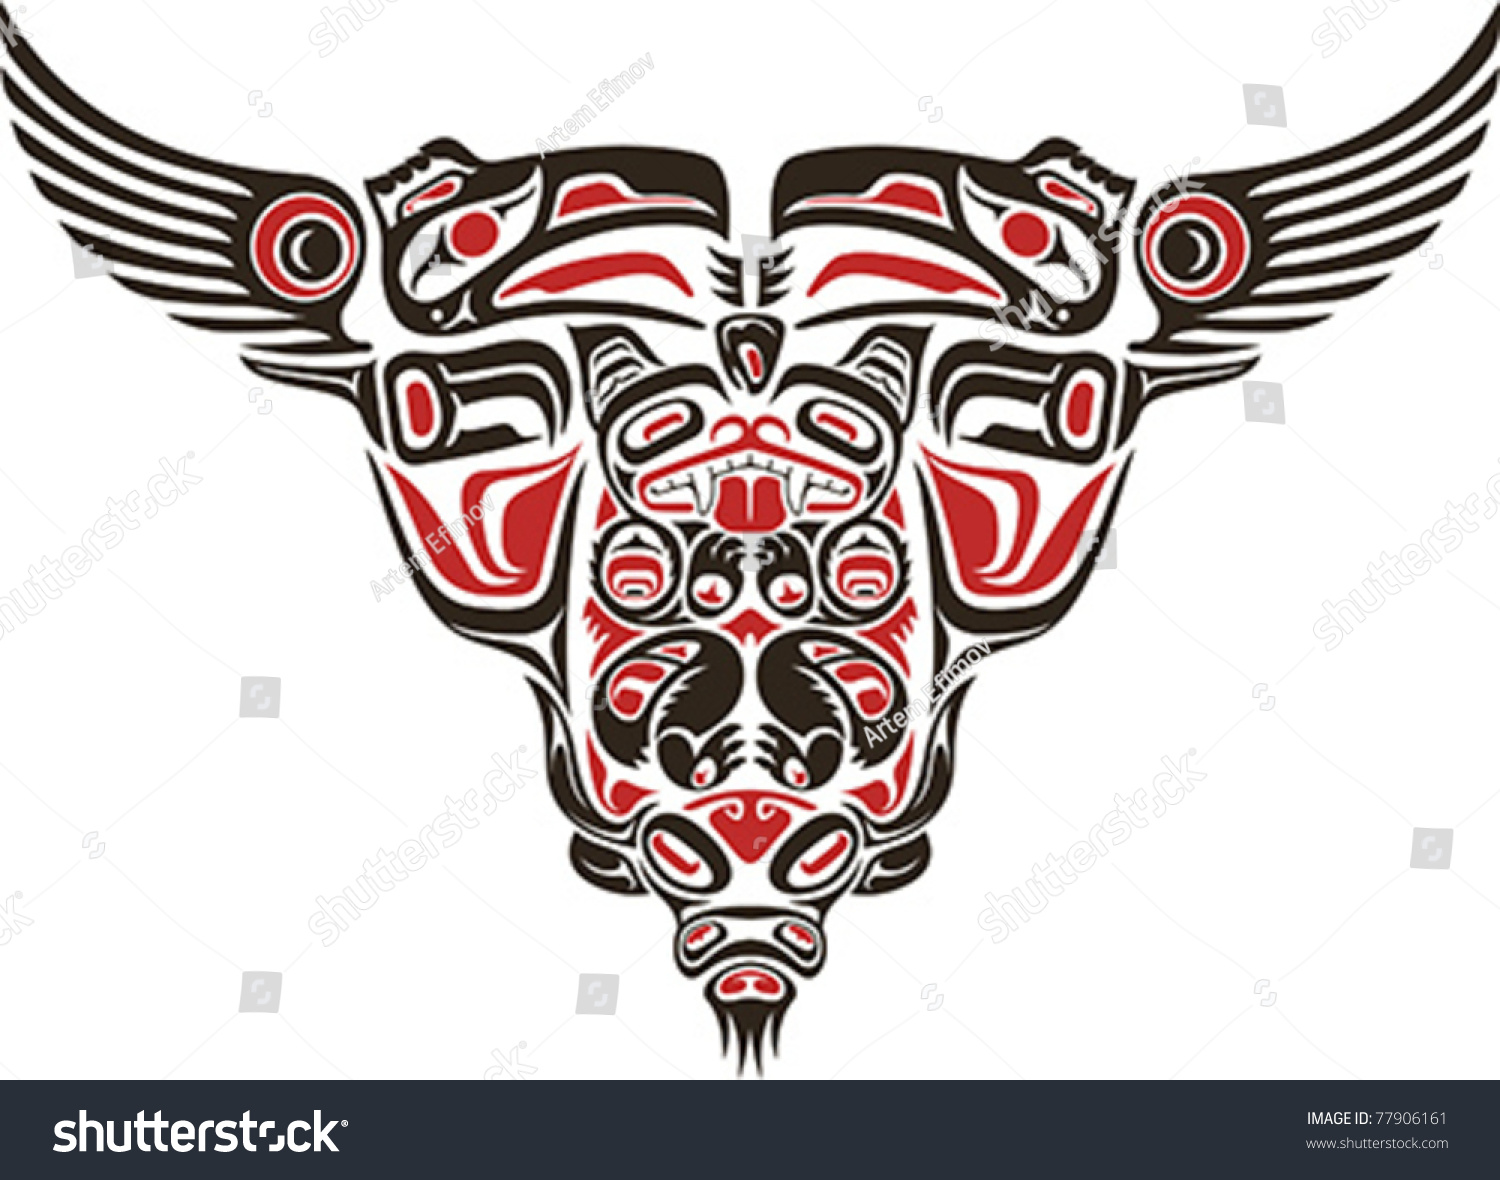 haida style tattoo design created animal stock vector 77906161 shutterstock. Black Bedroom Furniture Sets. Home Design Ideas